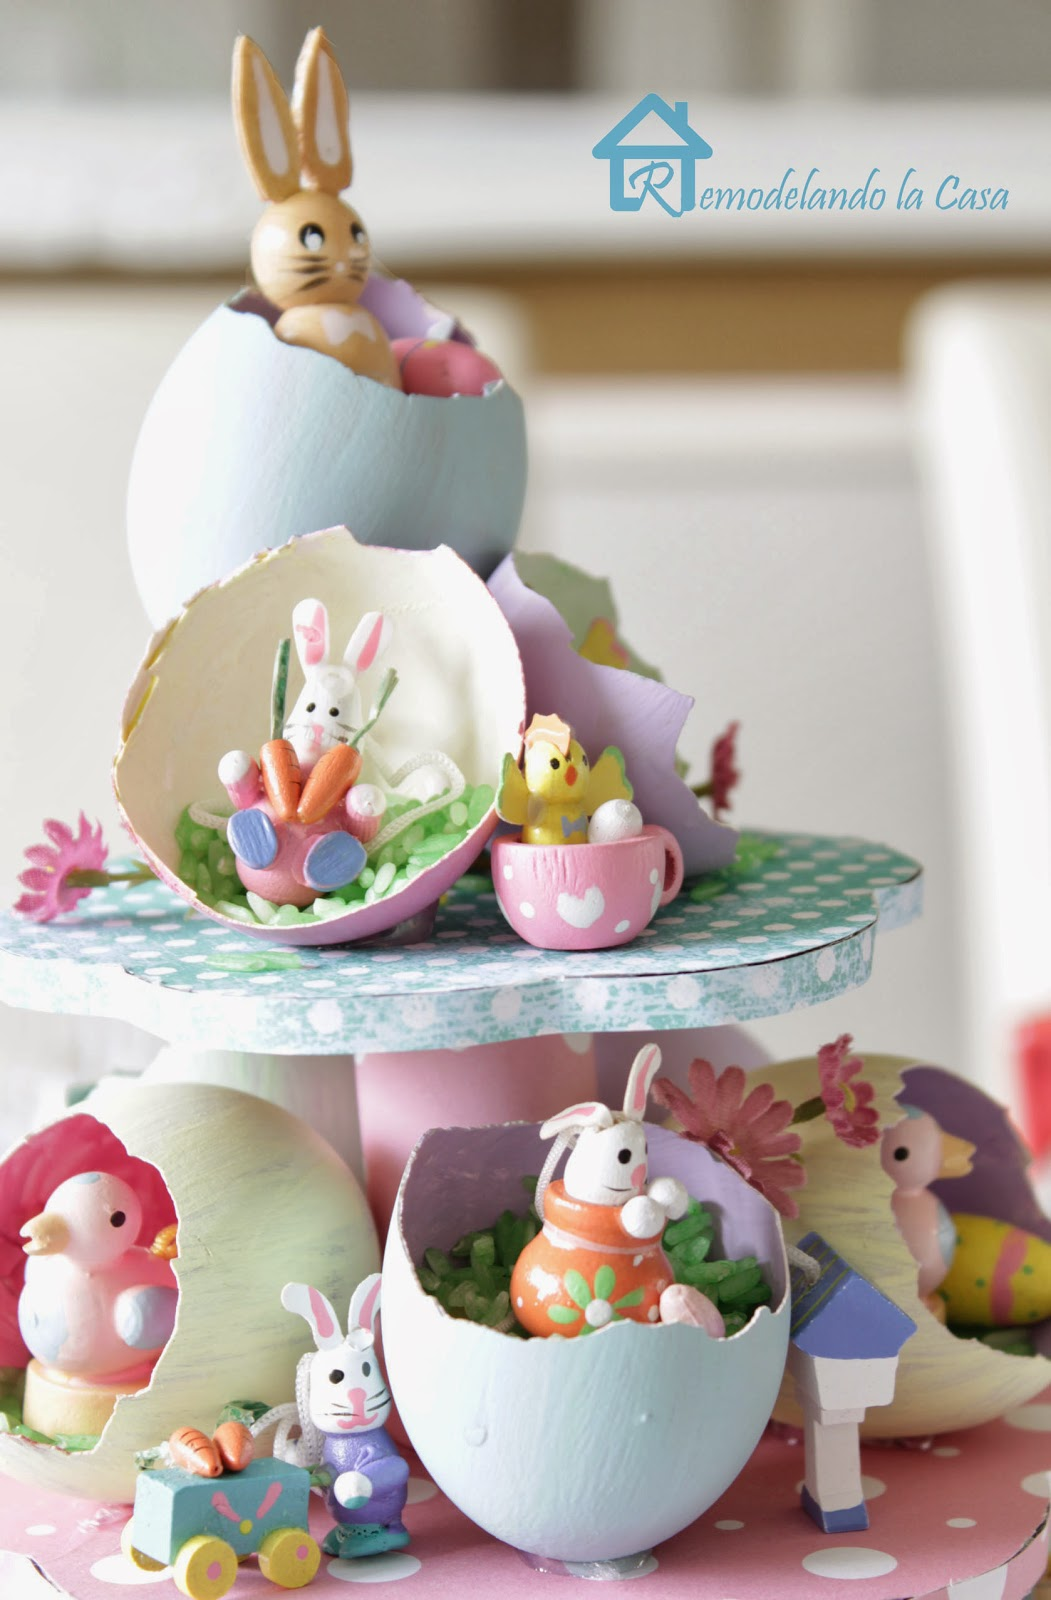 rabbits, birds, duck, chicks, carrots on Easter egg tree